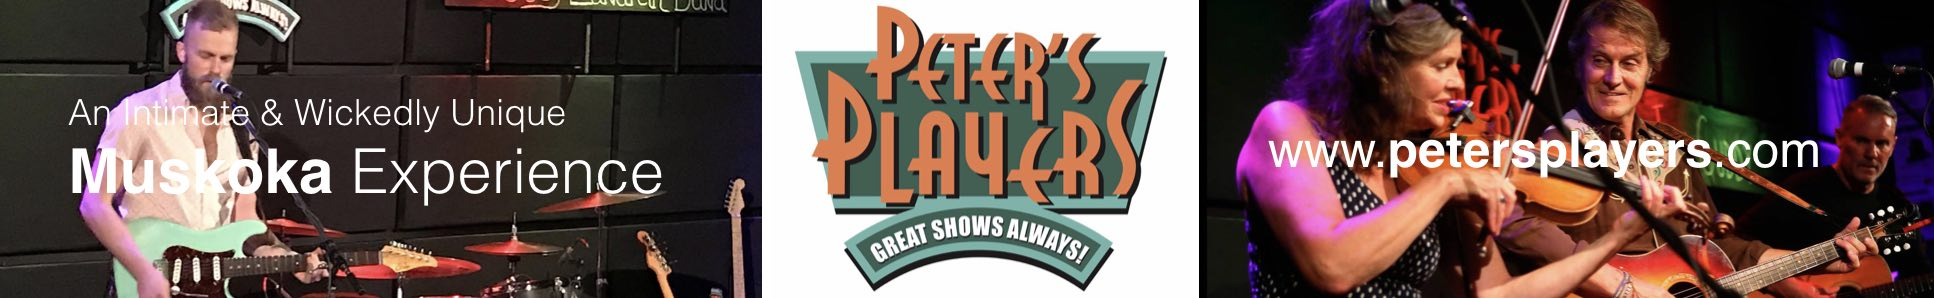 Peters Players 03